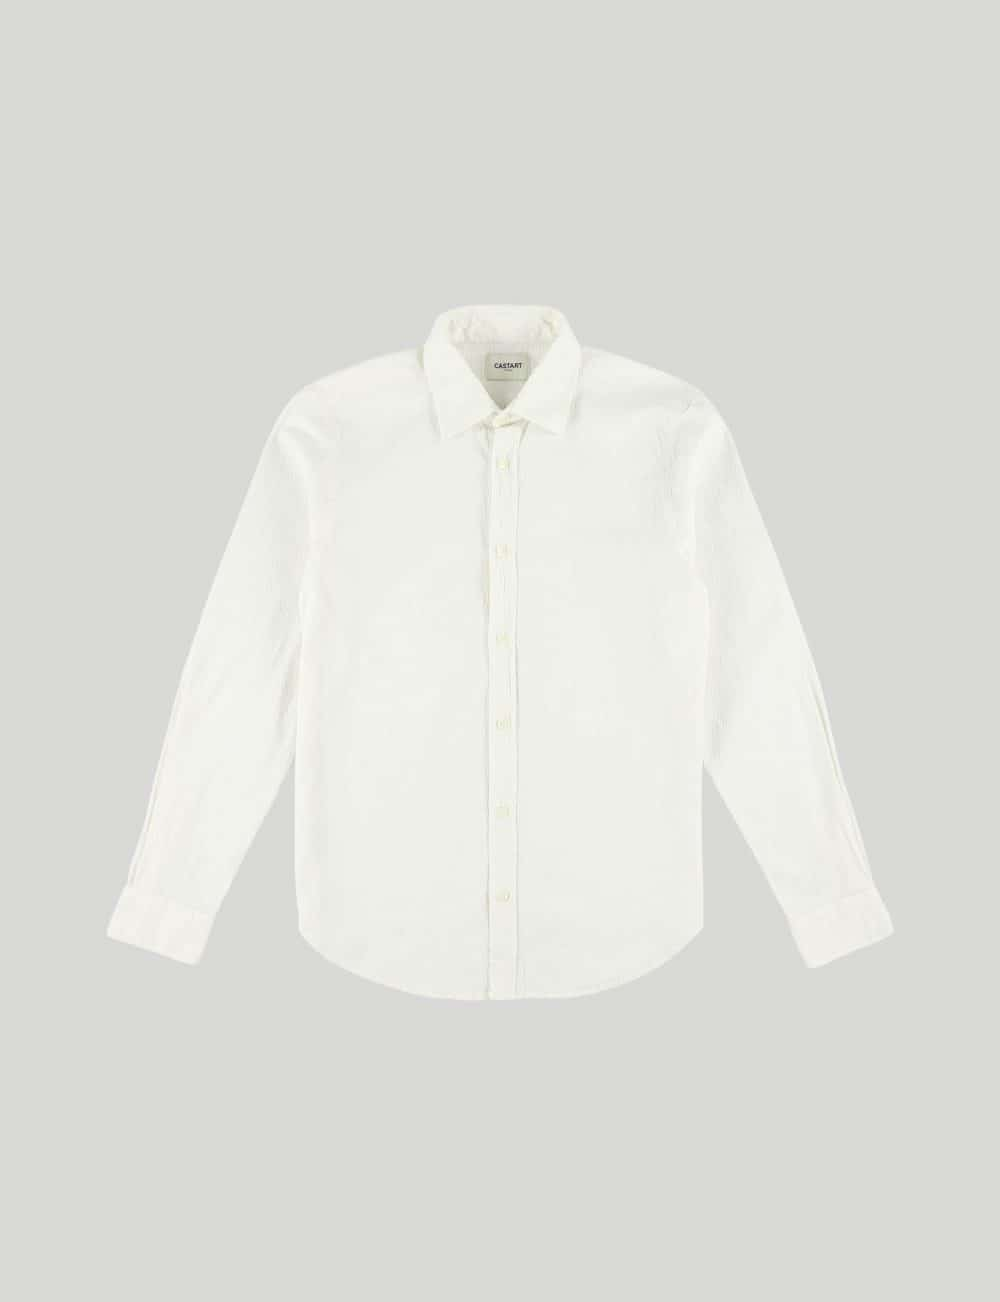 Castart - Tiger Tooth LS Shirt - Ecru